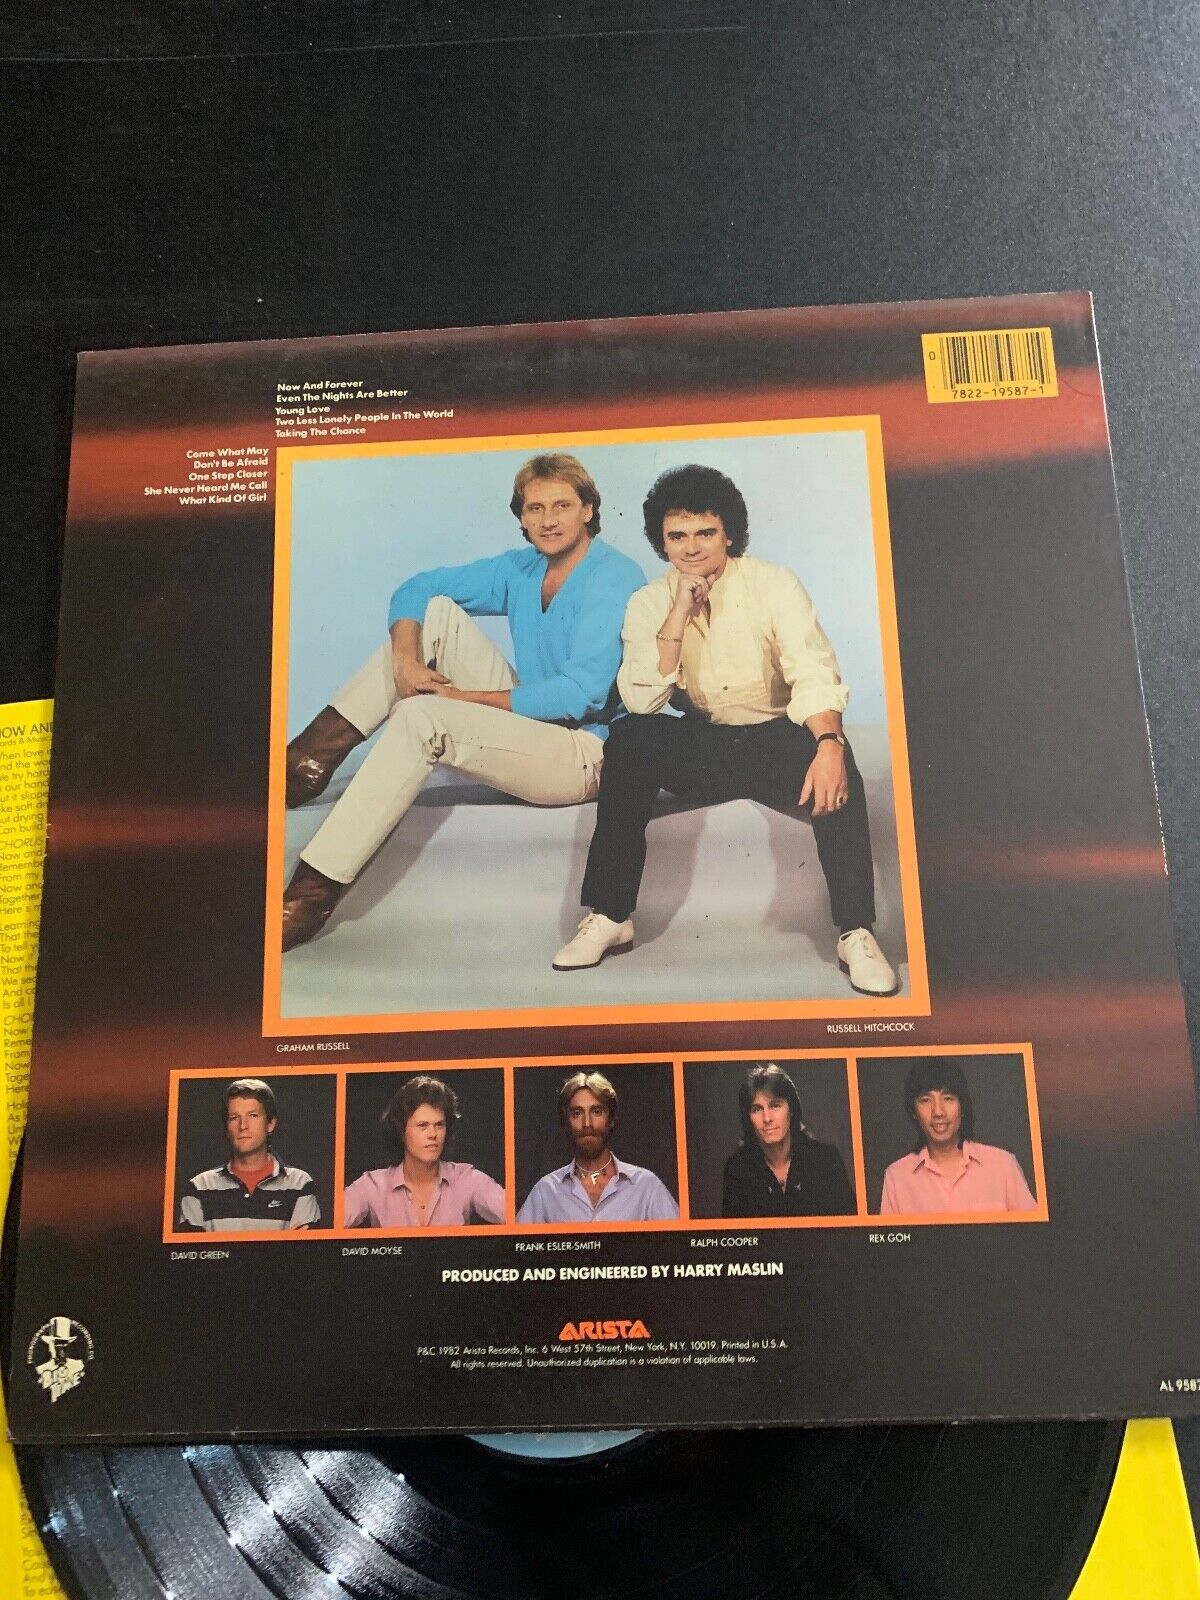 LP RECORD - AIR SUPPLY - NOW AND FOREVER - ARISTA RECORDS - $9.99